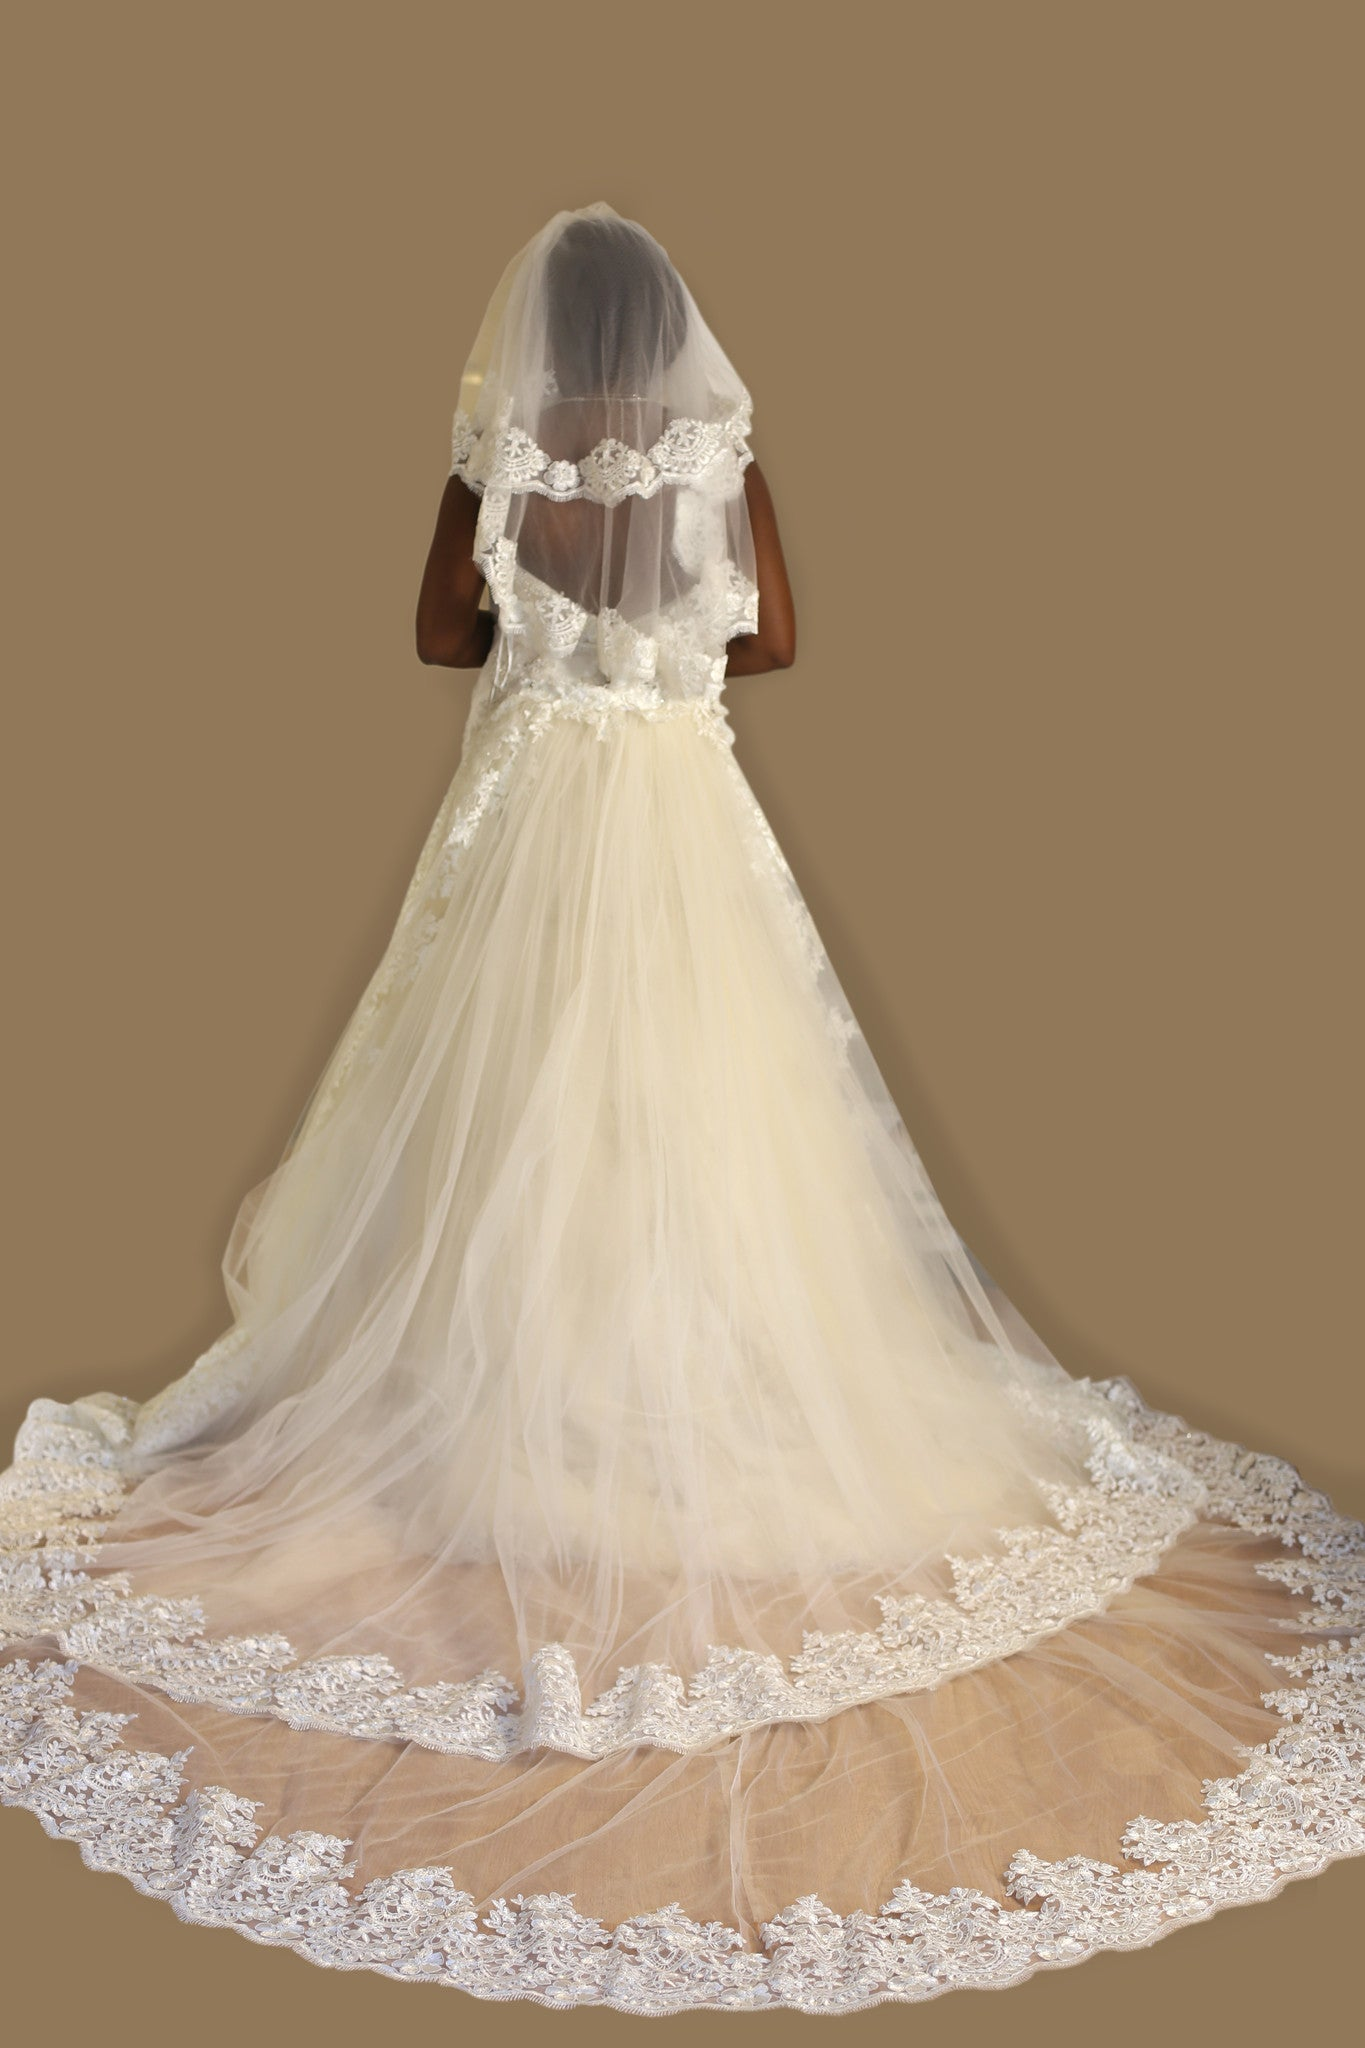 Bridal Detachable Cathedral Train With Two Layers of Lace Appliqué (Style #ANGIE PB153) - Dream Dresses by P.M.N  - 5